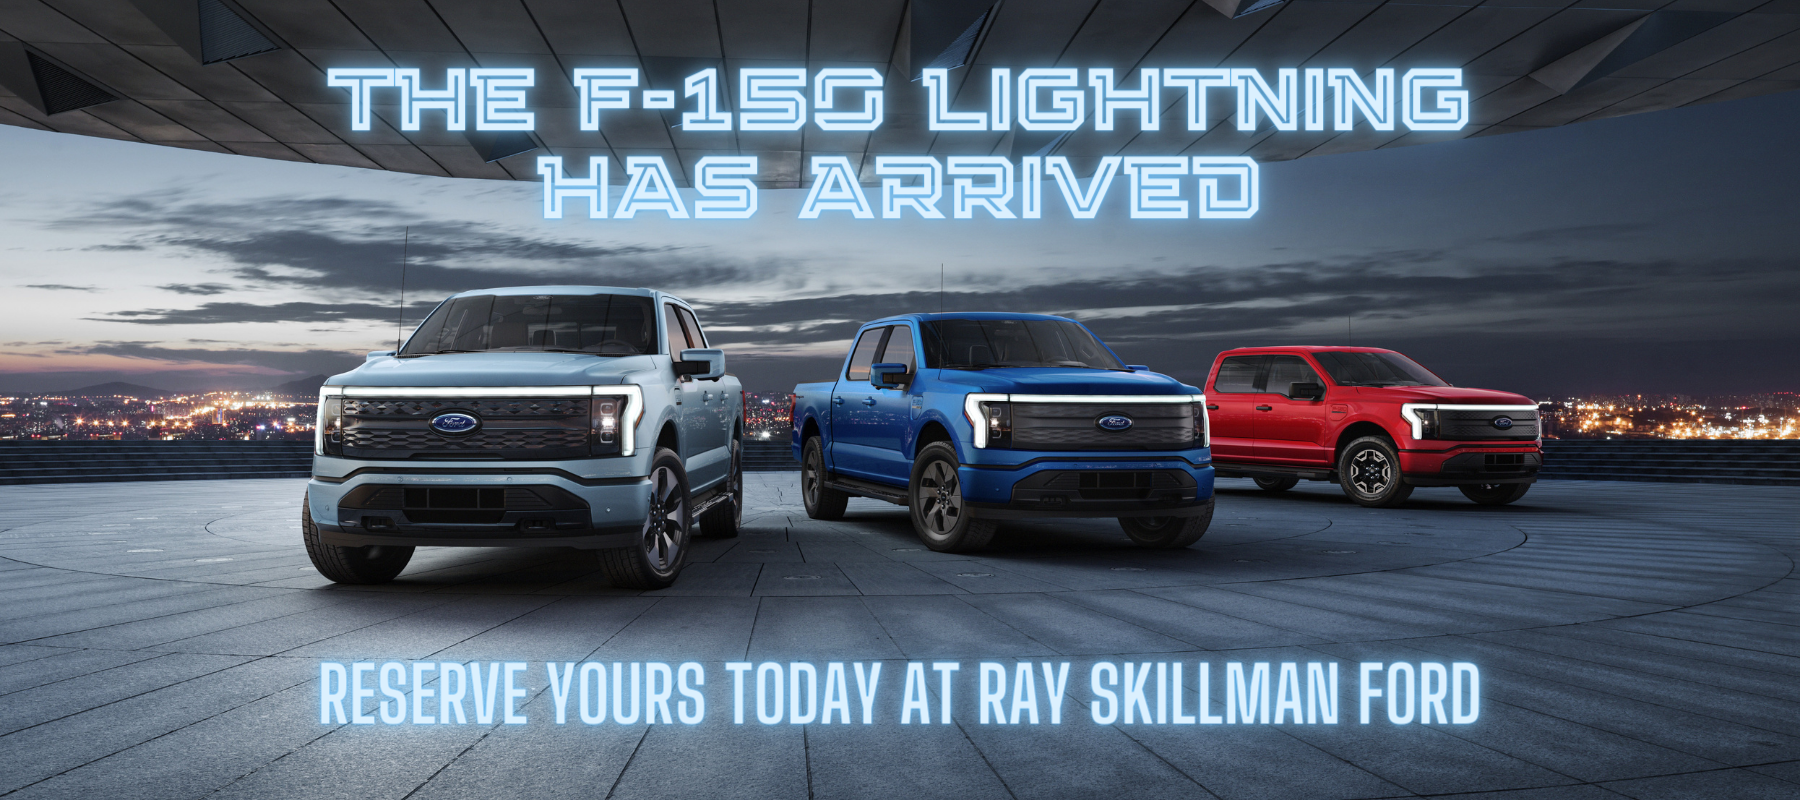 Reserve Your Ford F-150 Lightning with Ray Skillman Ford